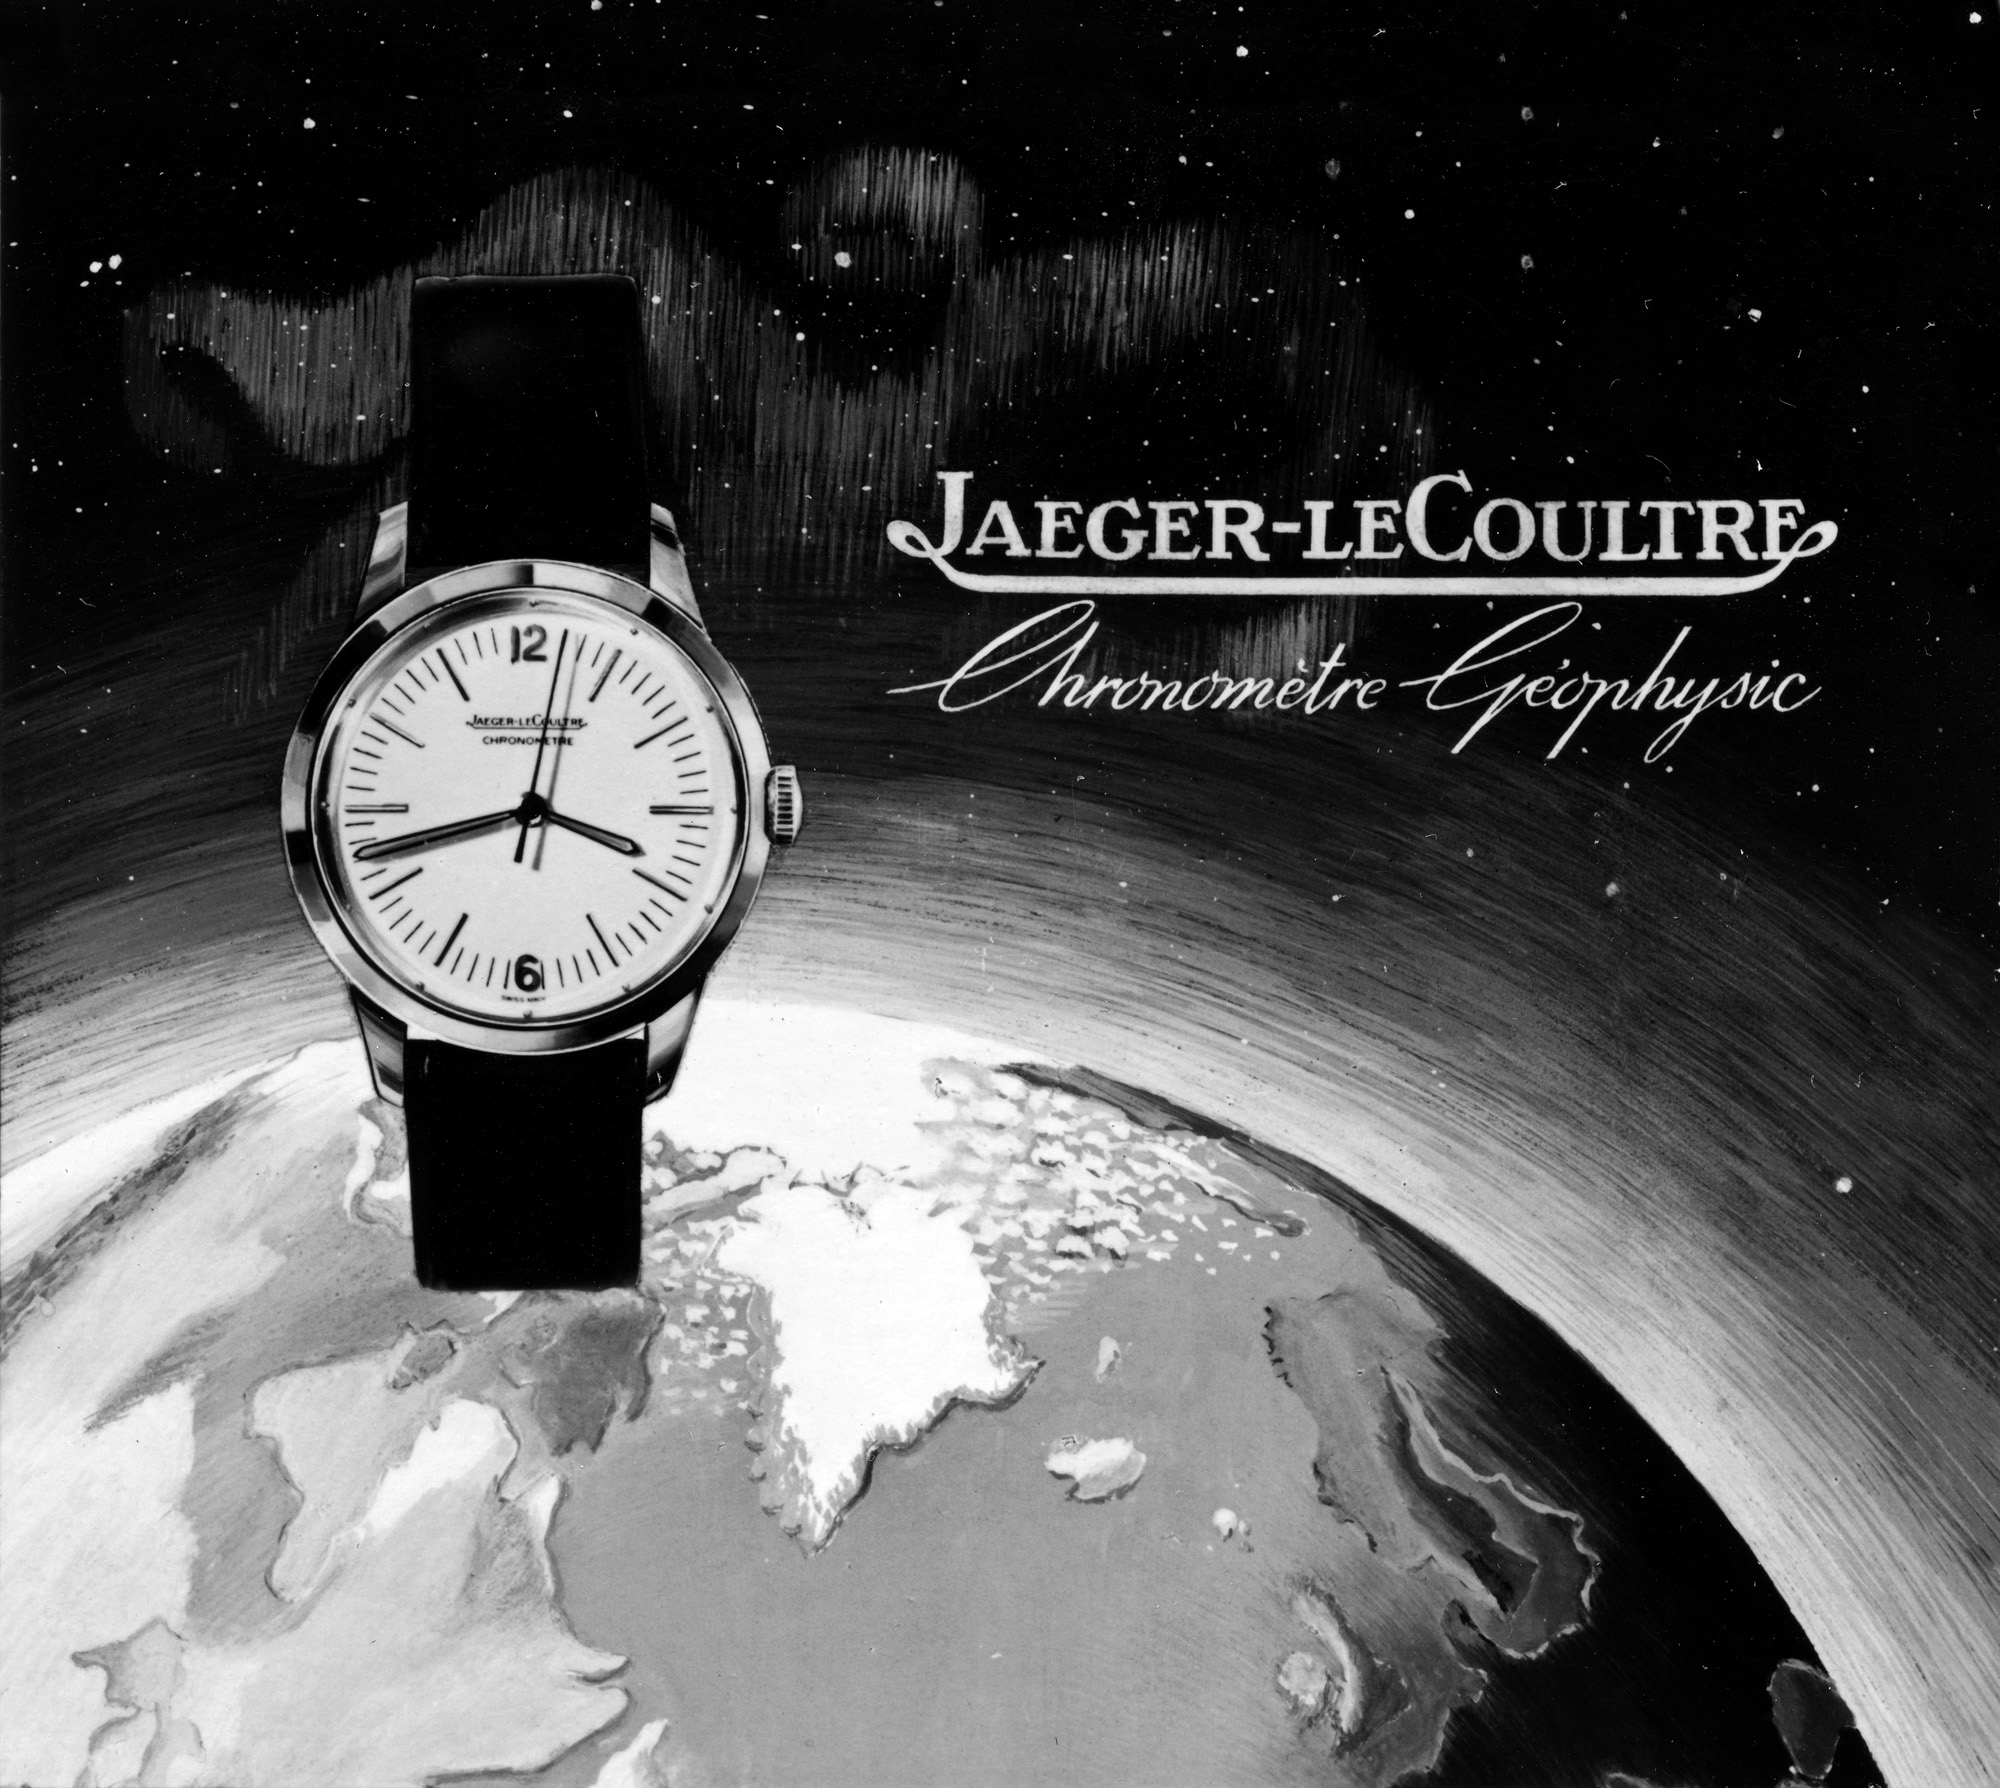 Historical Poster on Jaeger-LeCoultre Geophysic